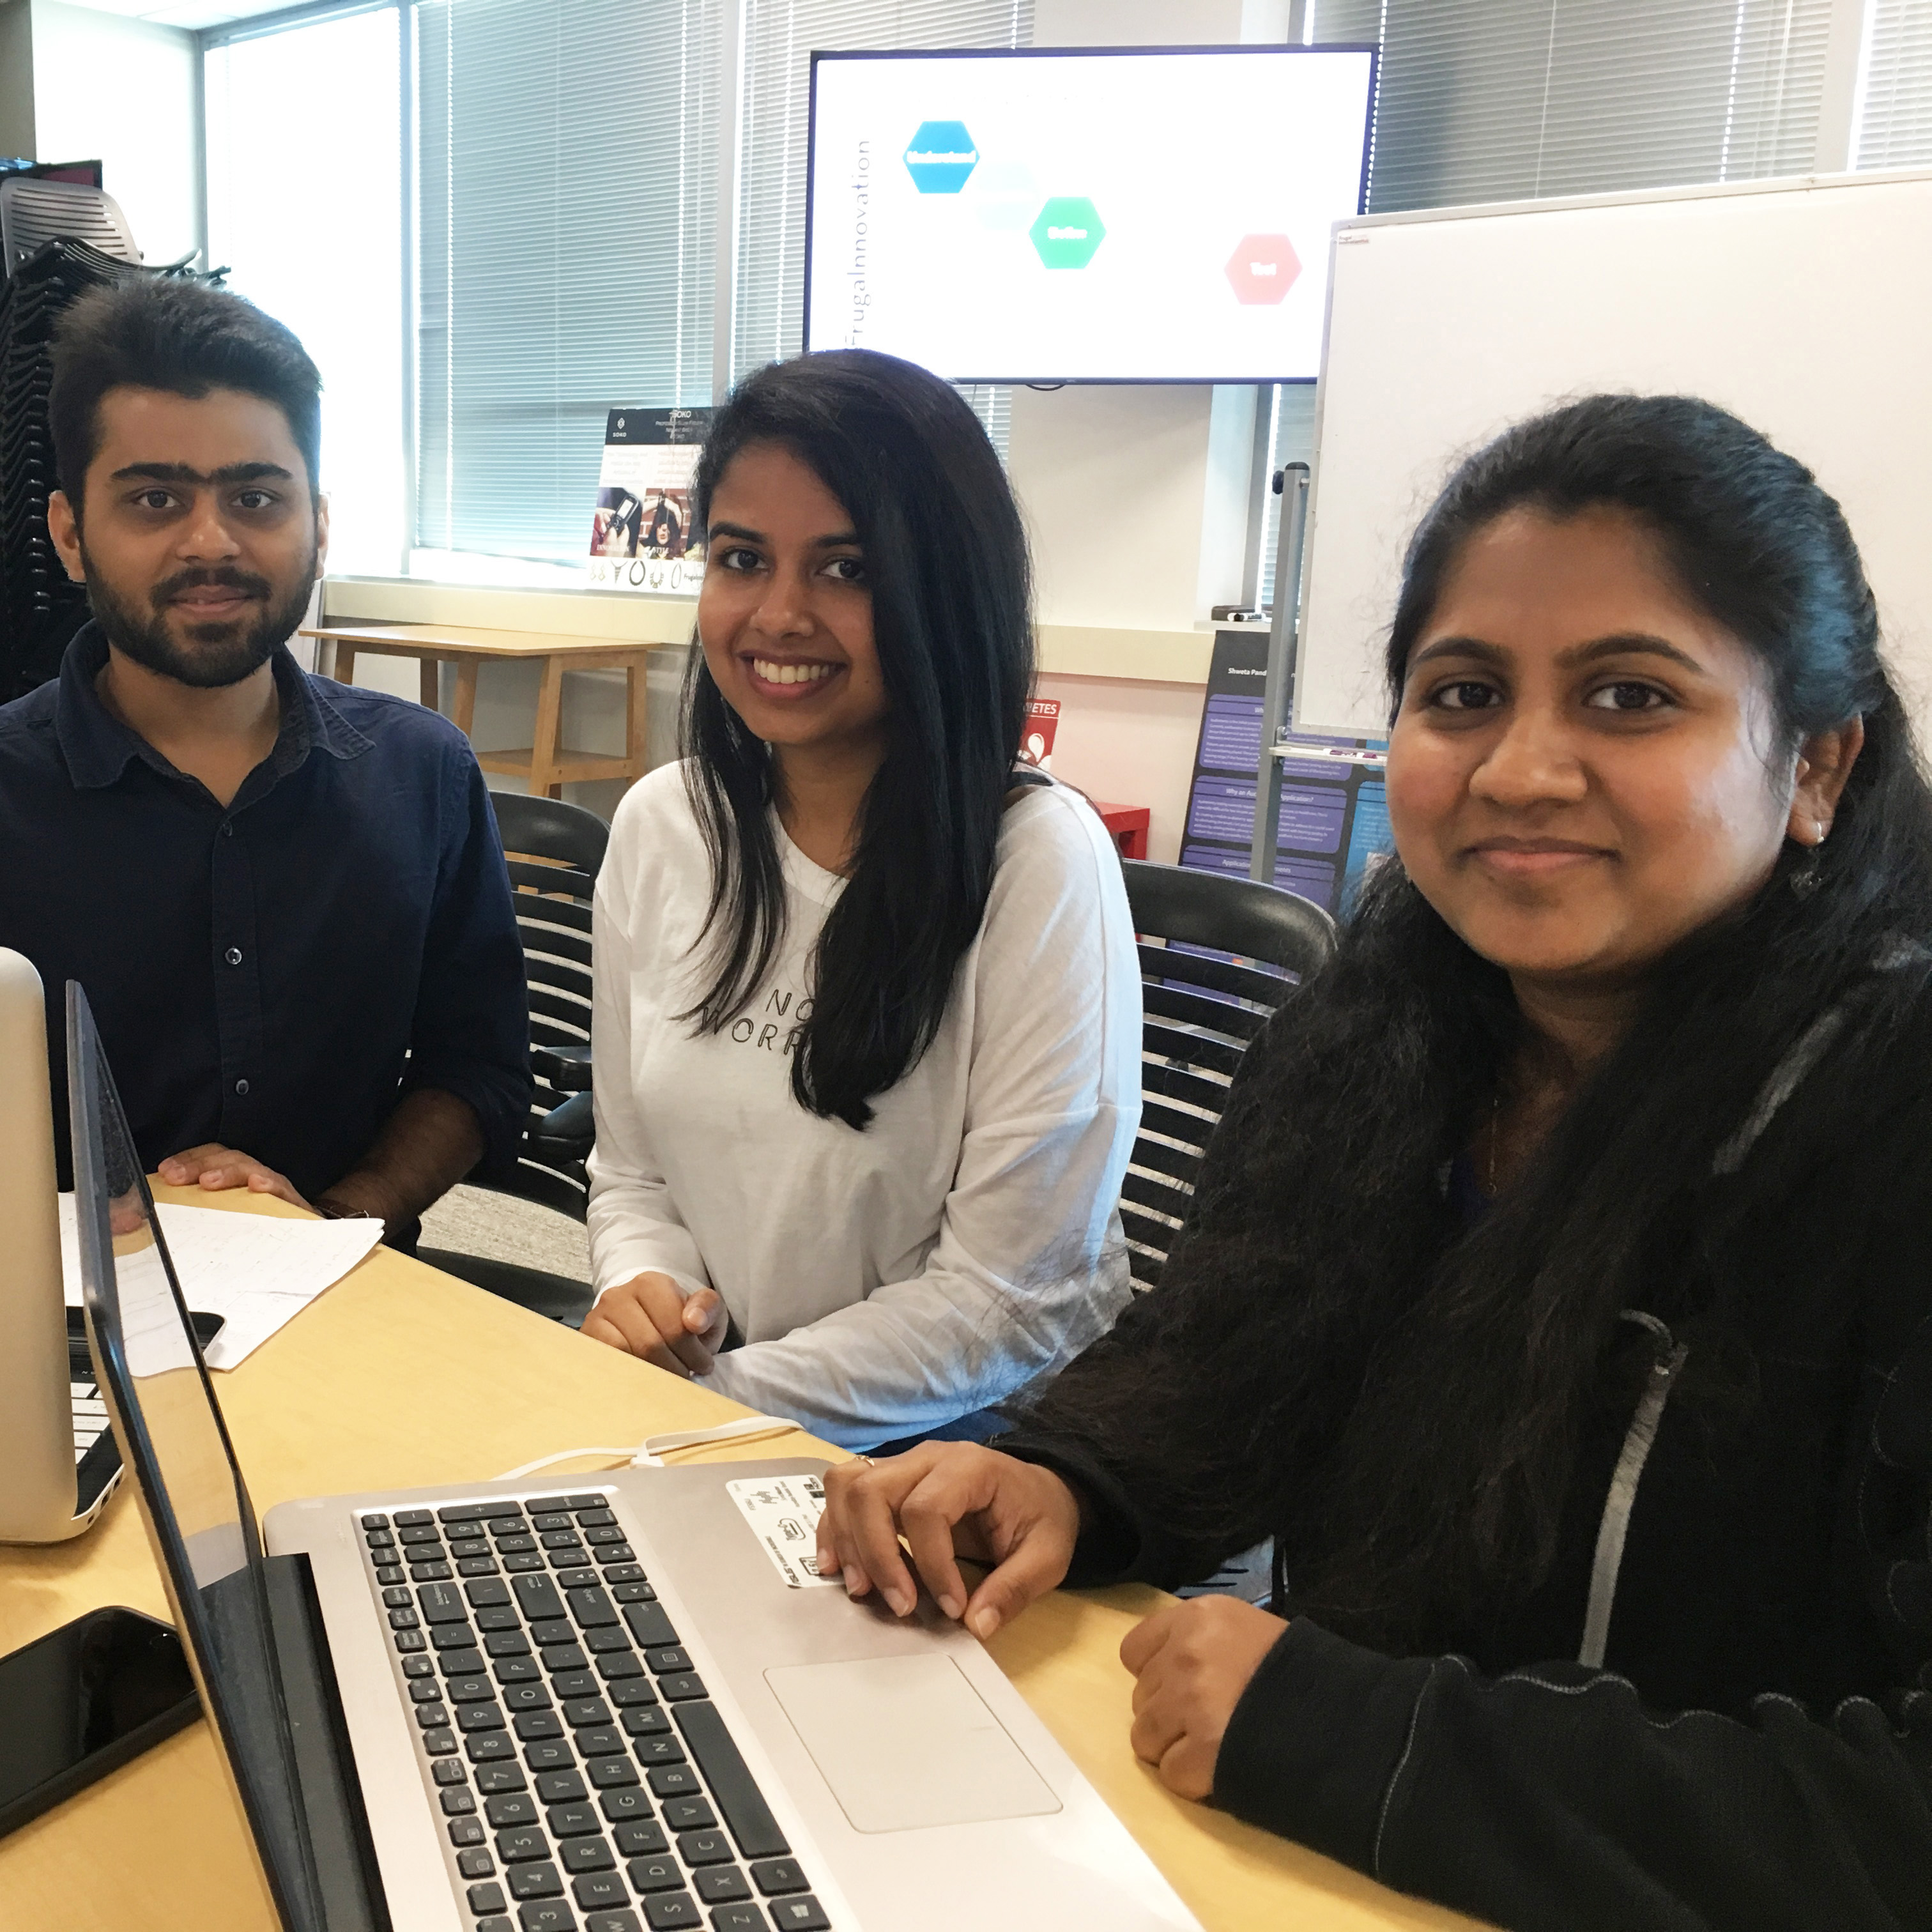 Graduate computer engineering students Grism Patel, Anjeli Kumar, and Barsa Nayak in the Frugal Innovation Hub image link to story